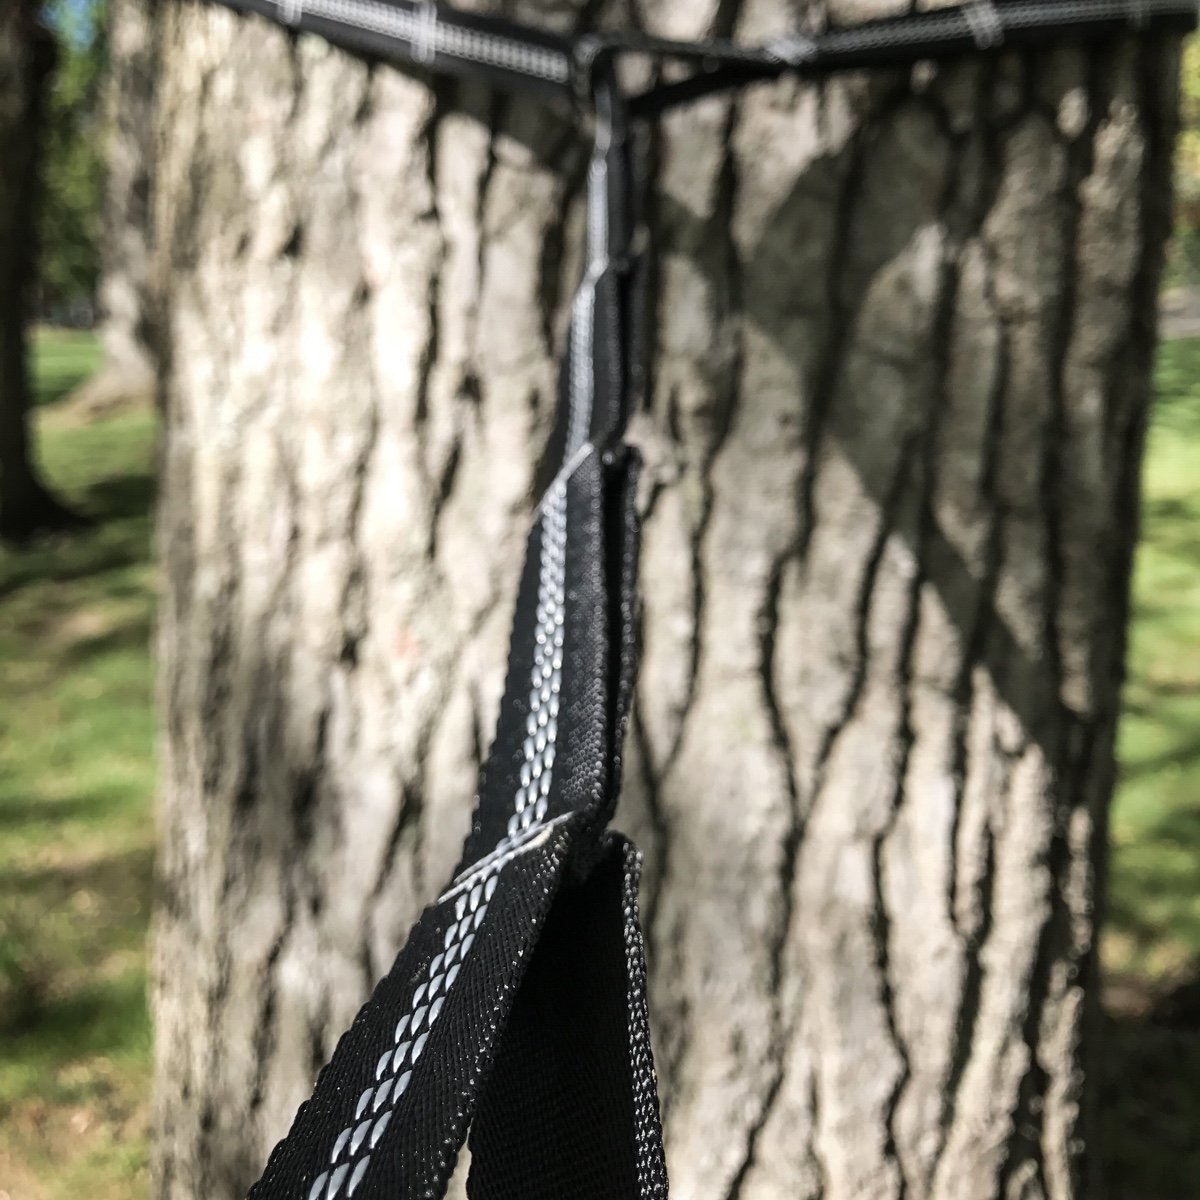 30ft /& 40ft Hammock Tree Straps The Quick /& Easy Tree Webbing Suspension System for Hammock Camping Backpacking and Travel 35 and 24 Loops per Strap /…